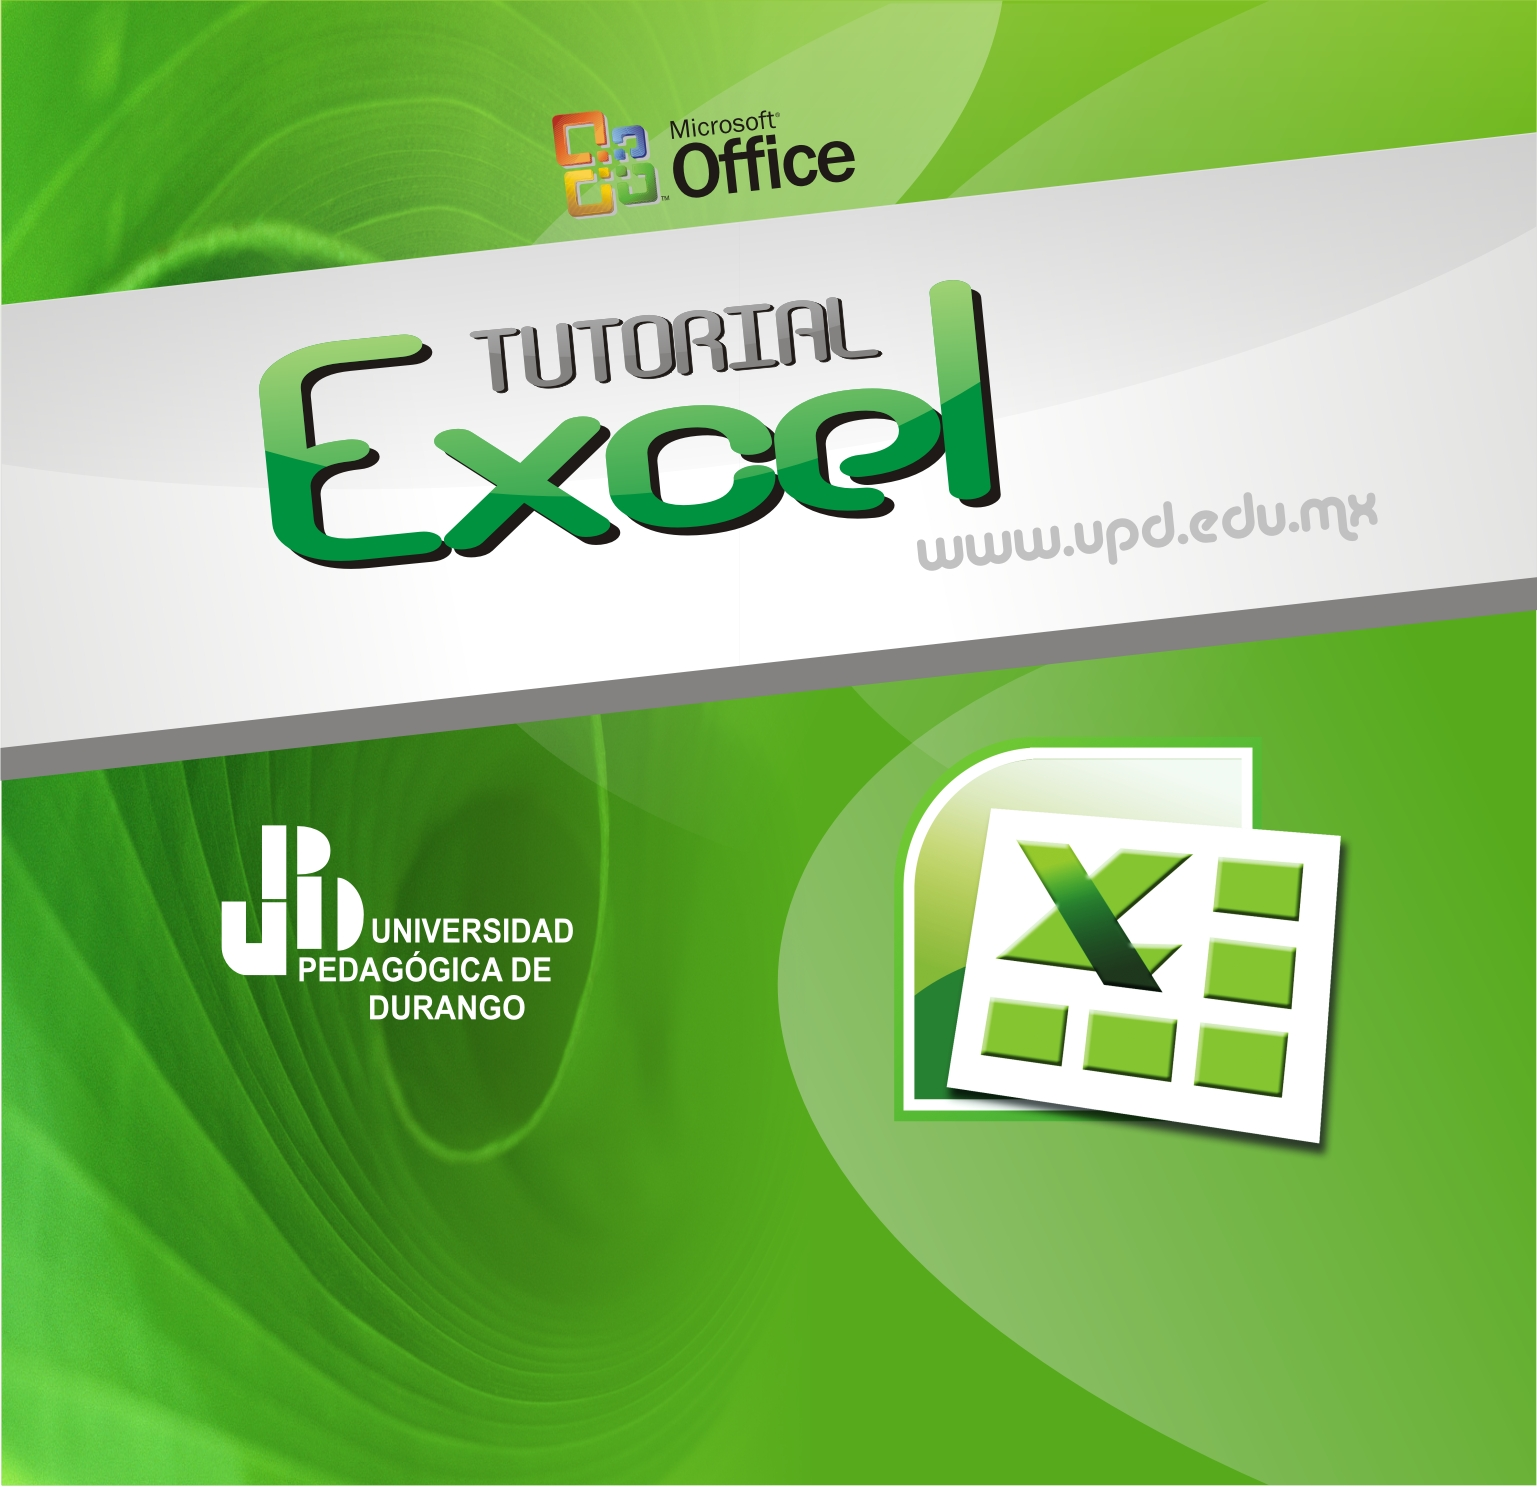 Ediblewildsus  Winning The Basics Of Iwork Number For Ms Excel Users  Radical Hub With Exquisite Tutorexcel With Alluring Excel For Windows Xp Also Excel Spline Interpolation In Addition Online Excel To Pdf Converter And How To Create An Address List In Excel As Well As Geocode Excel Additionally Loan Amortization Schedule Excel With Extra Payments From Radicalhubcom With Ediblewildsus  Exquisite The Basics Of Iwork Number For Ms Excel Users  Radical Hub With Alluring Tutorexcel And Winning Excel For Windows Xp Also Excel Spline Interpolation In Addition Online Excel To Pdf Converter From Radicalhubcom